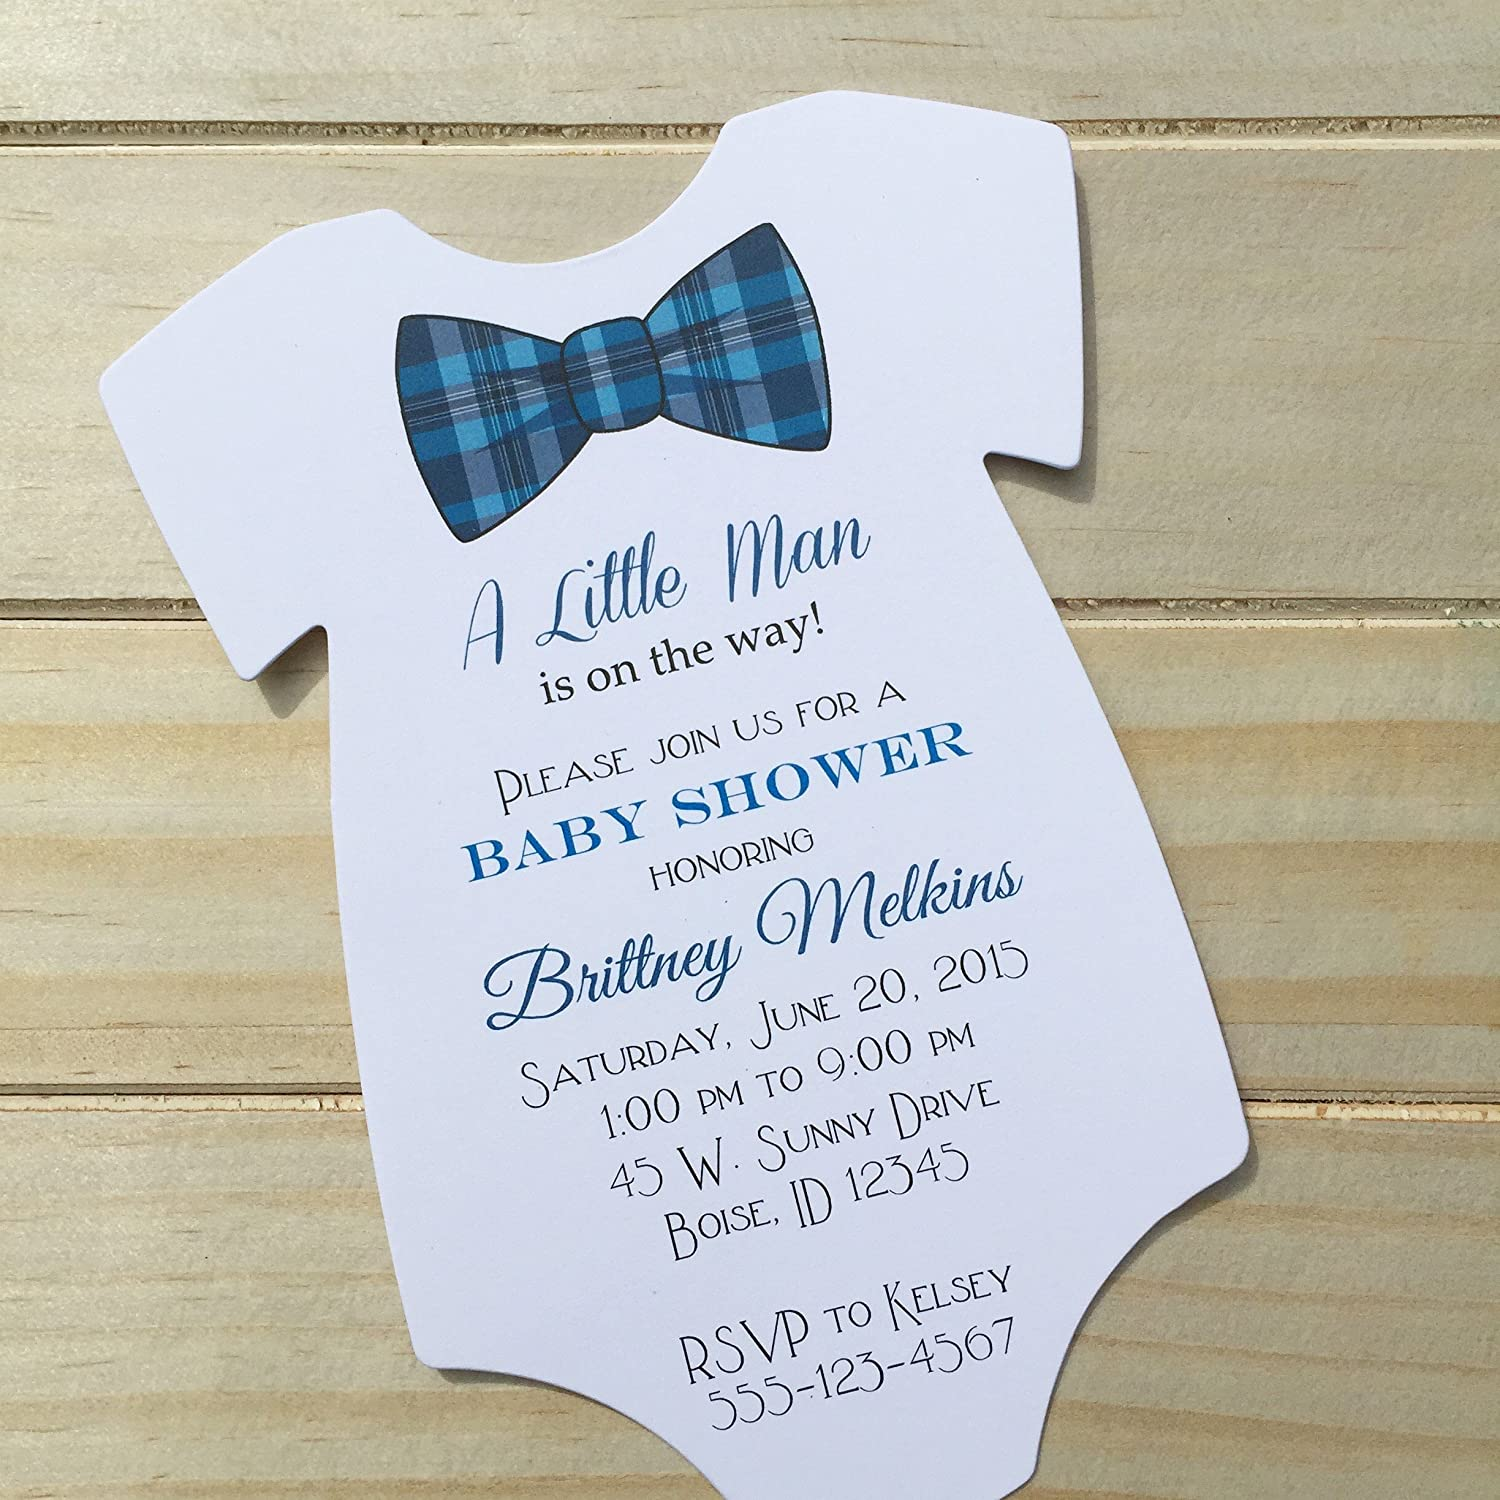 Amazon.com: Set of 10 Blue Plaid Bow Tie Baby Shower Invitations - All  Wording Customized - Boy Baby Shower: Handmade